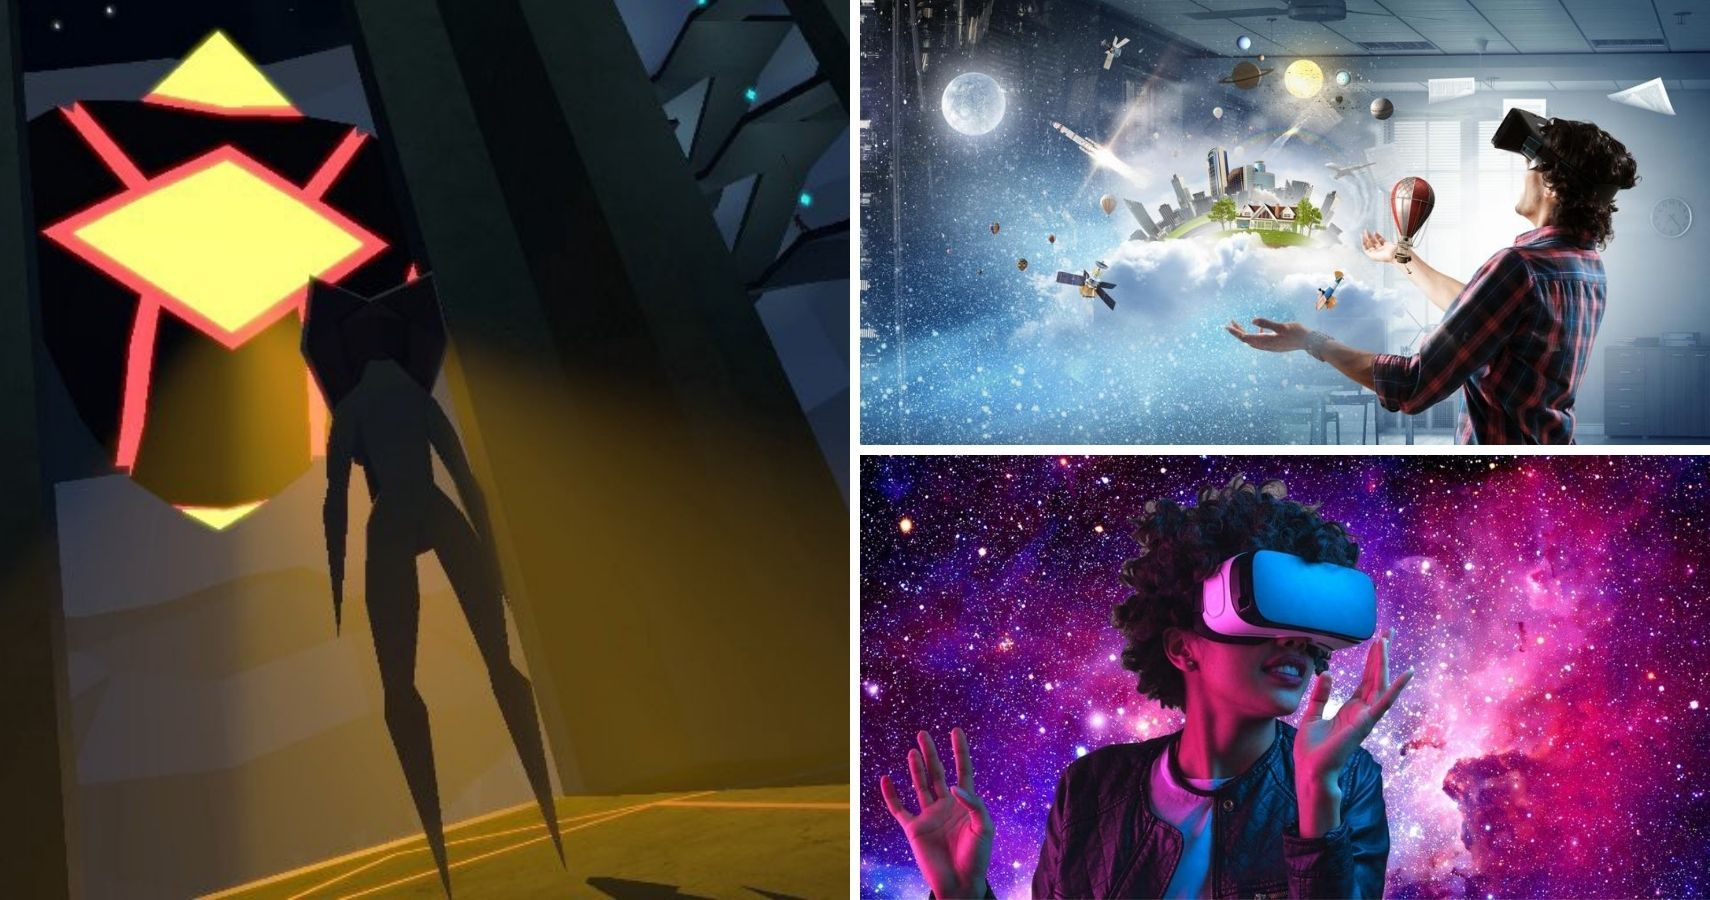 10 Top Trending VR Games Of October (According To Steam)